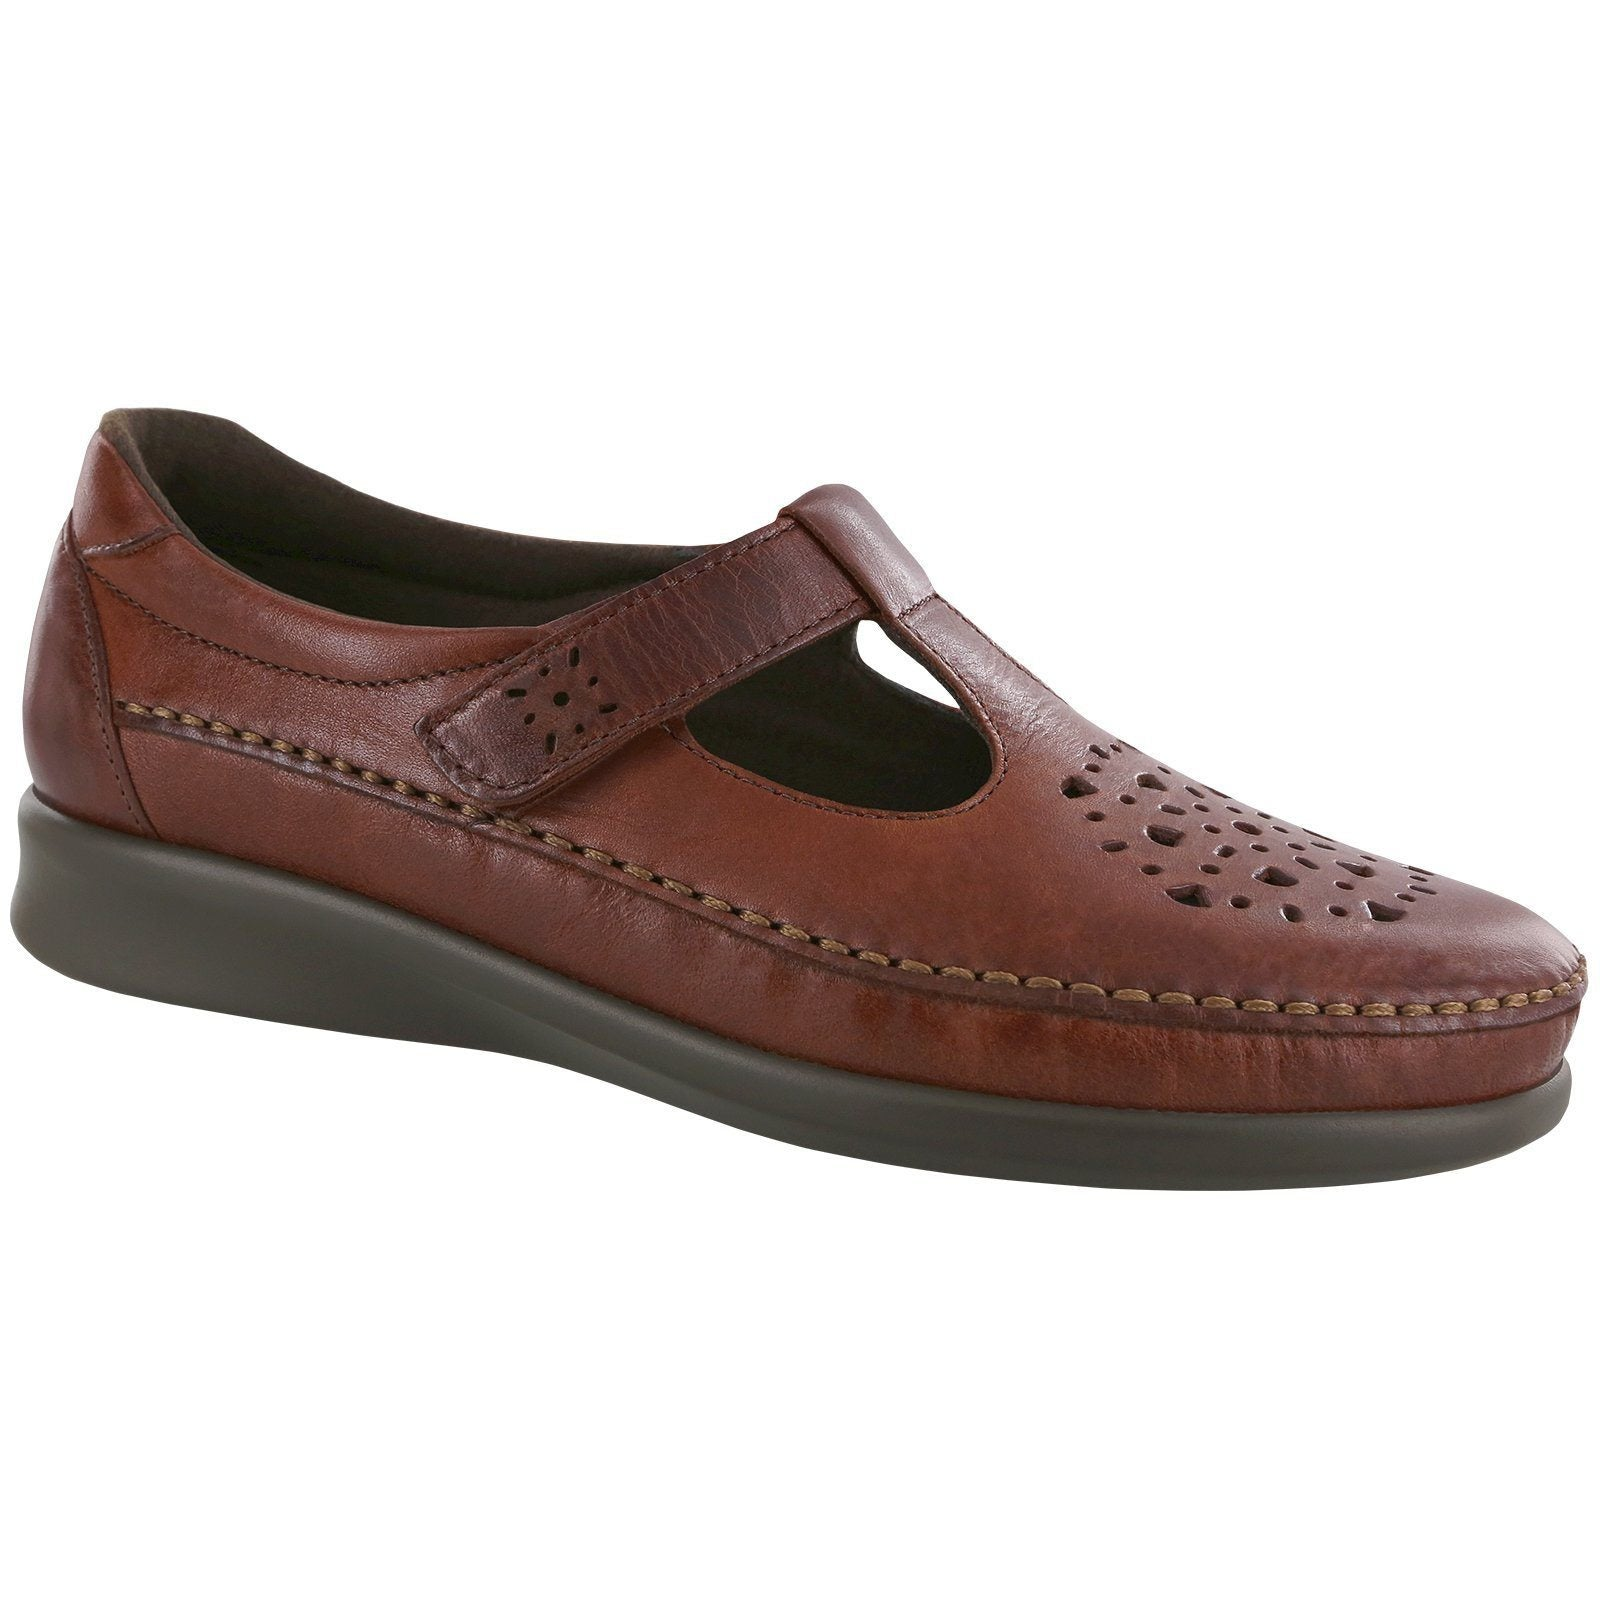 Willow Walnut by SAS Shoes: Comfort Women's Shoes